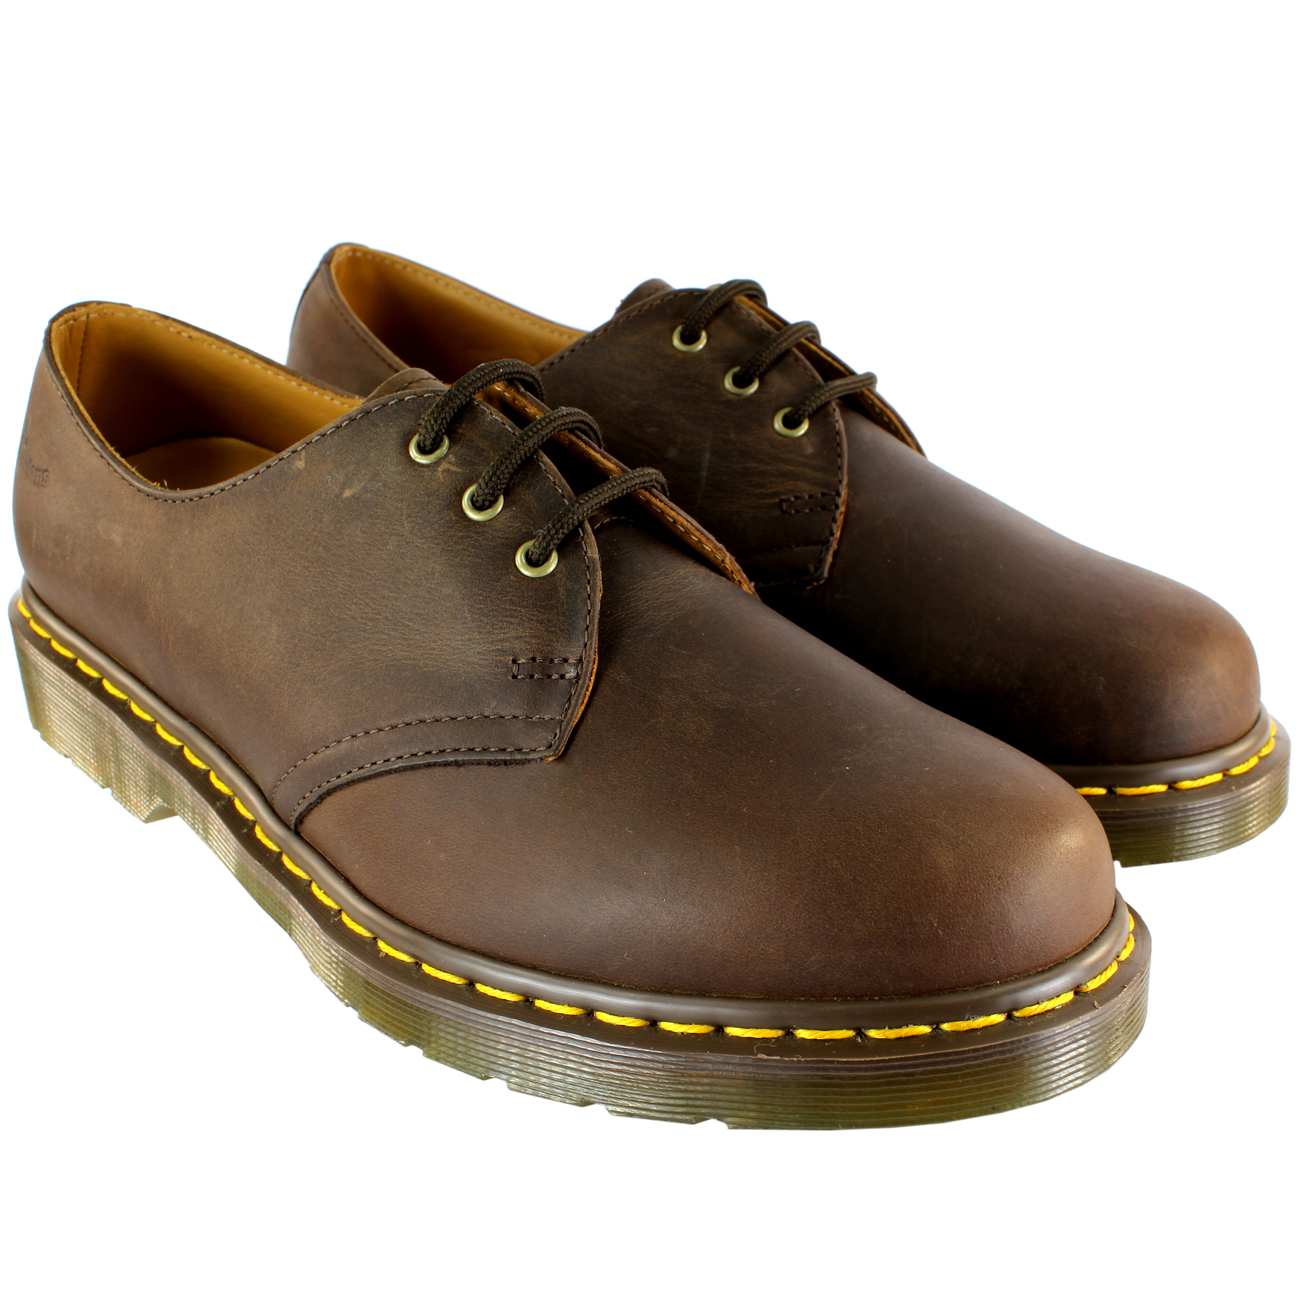 Dr Martens 1461 Flat Shoes